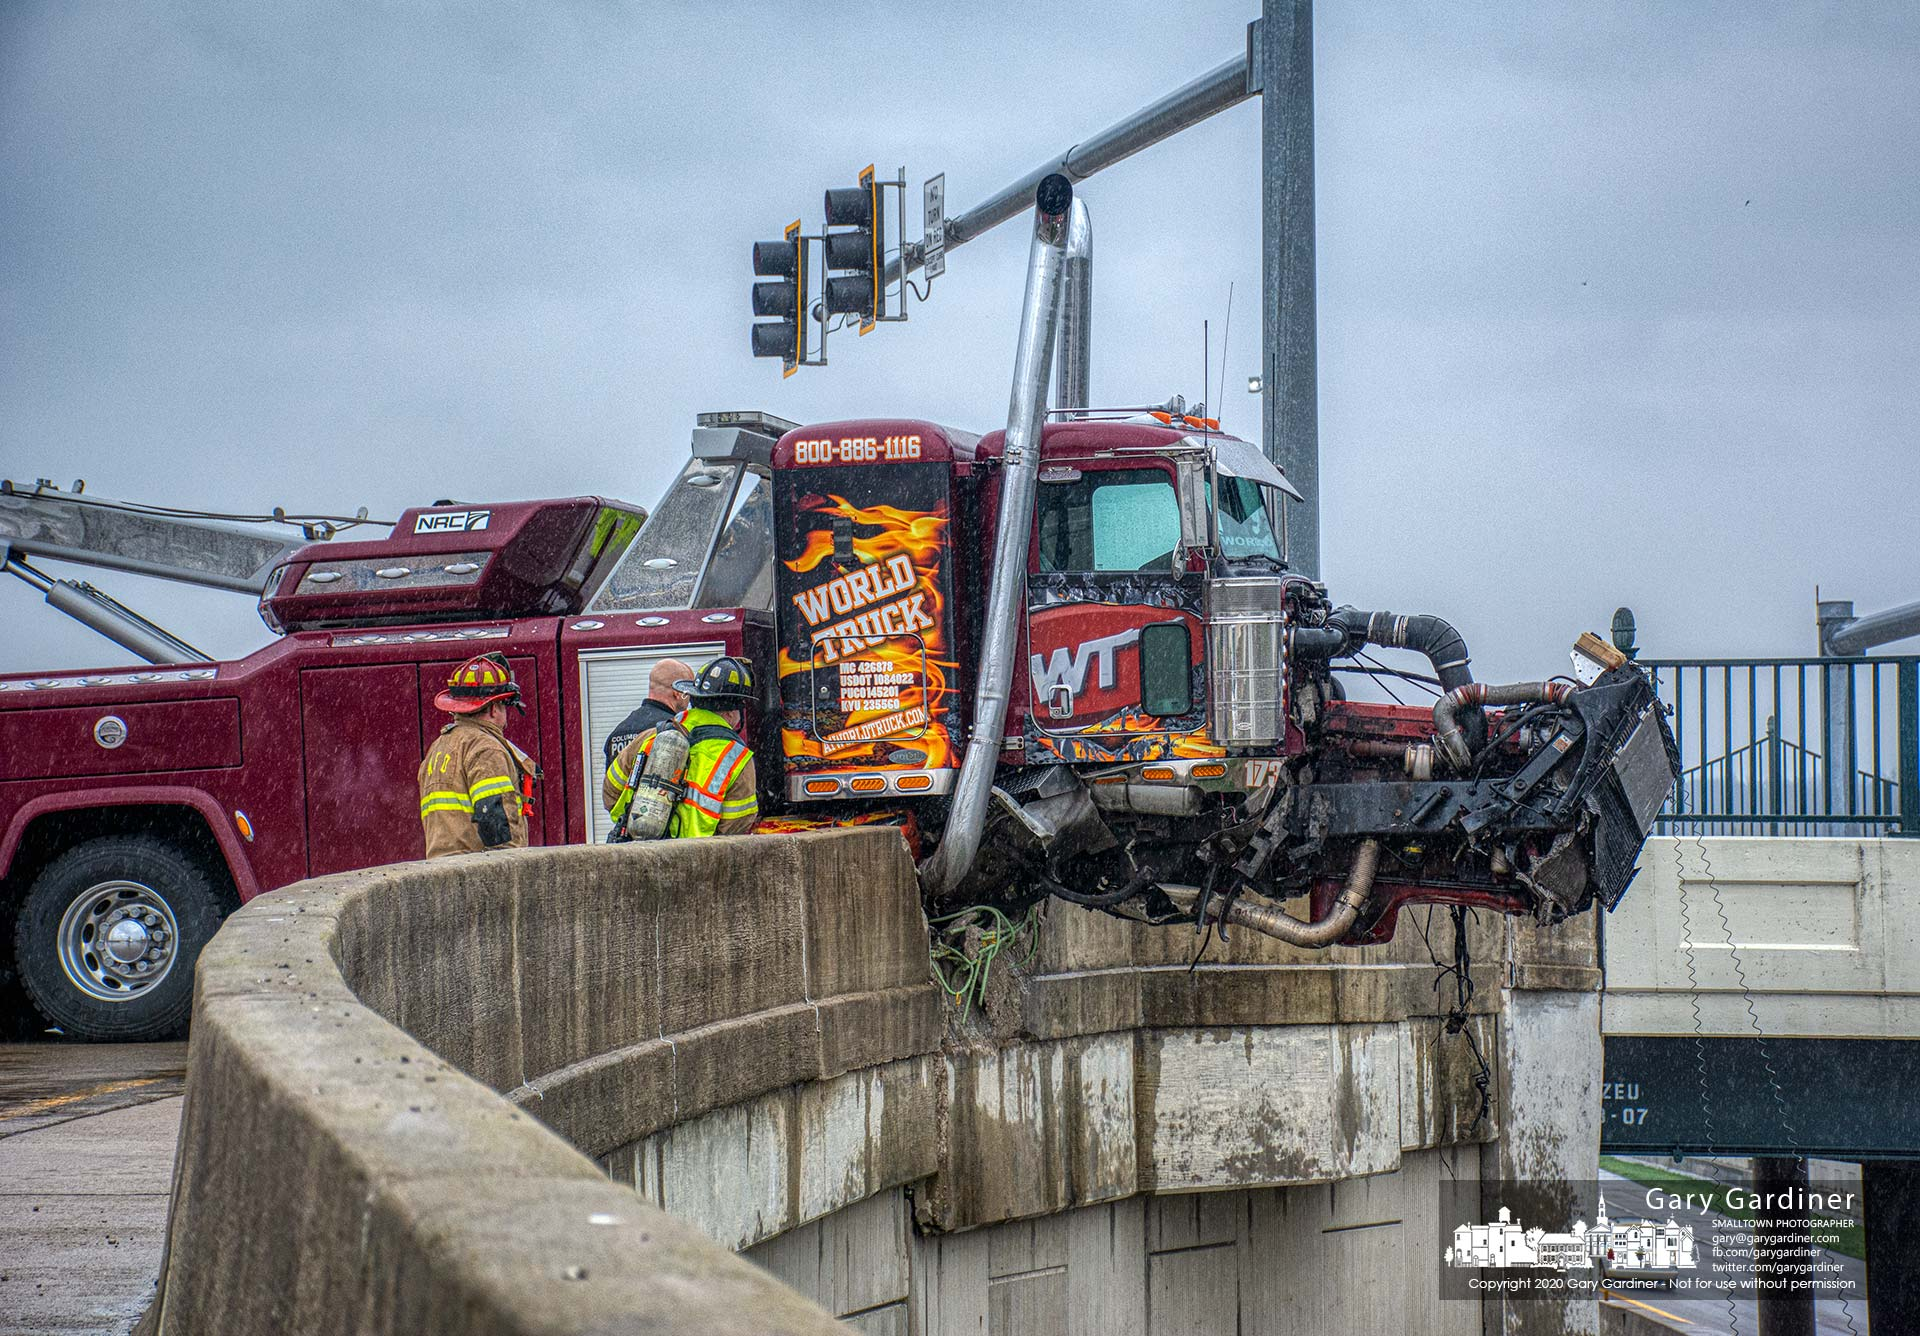 Westerville firefighters and Blendon Township police inspect the damage to a wrecker and retaining wall after the truck crashed at the Sunbury Road westbound intersection to 161 and I270. My Final Photo for April 17, 2020.